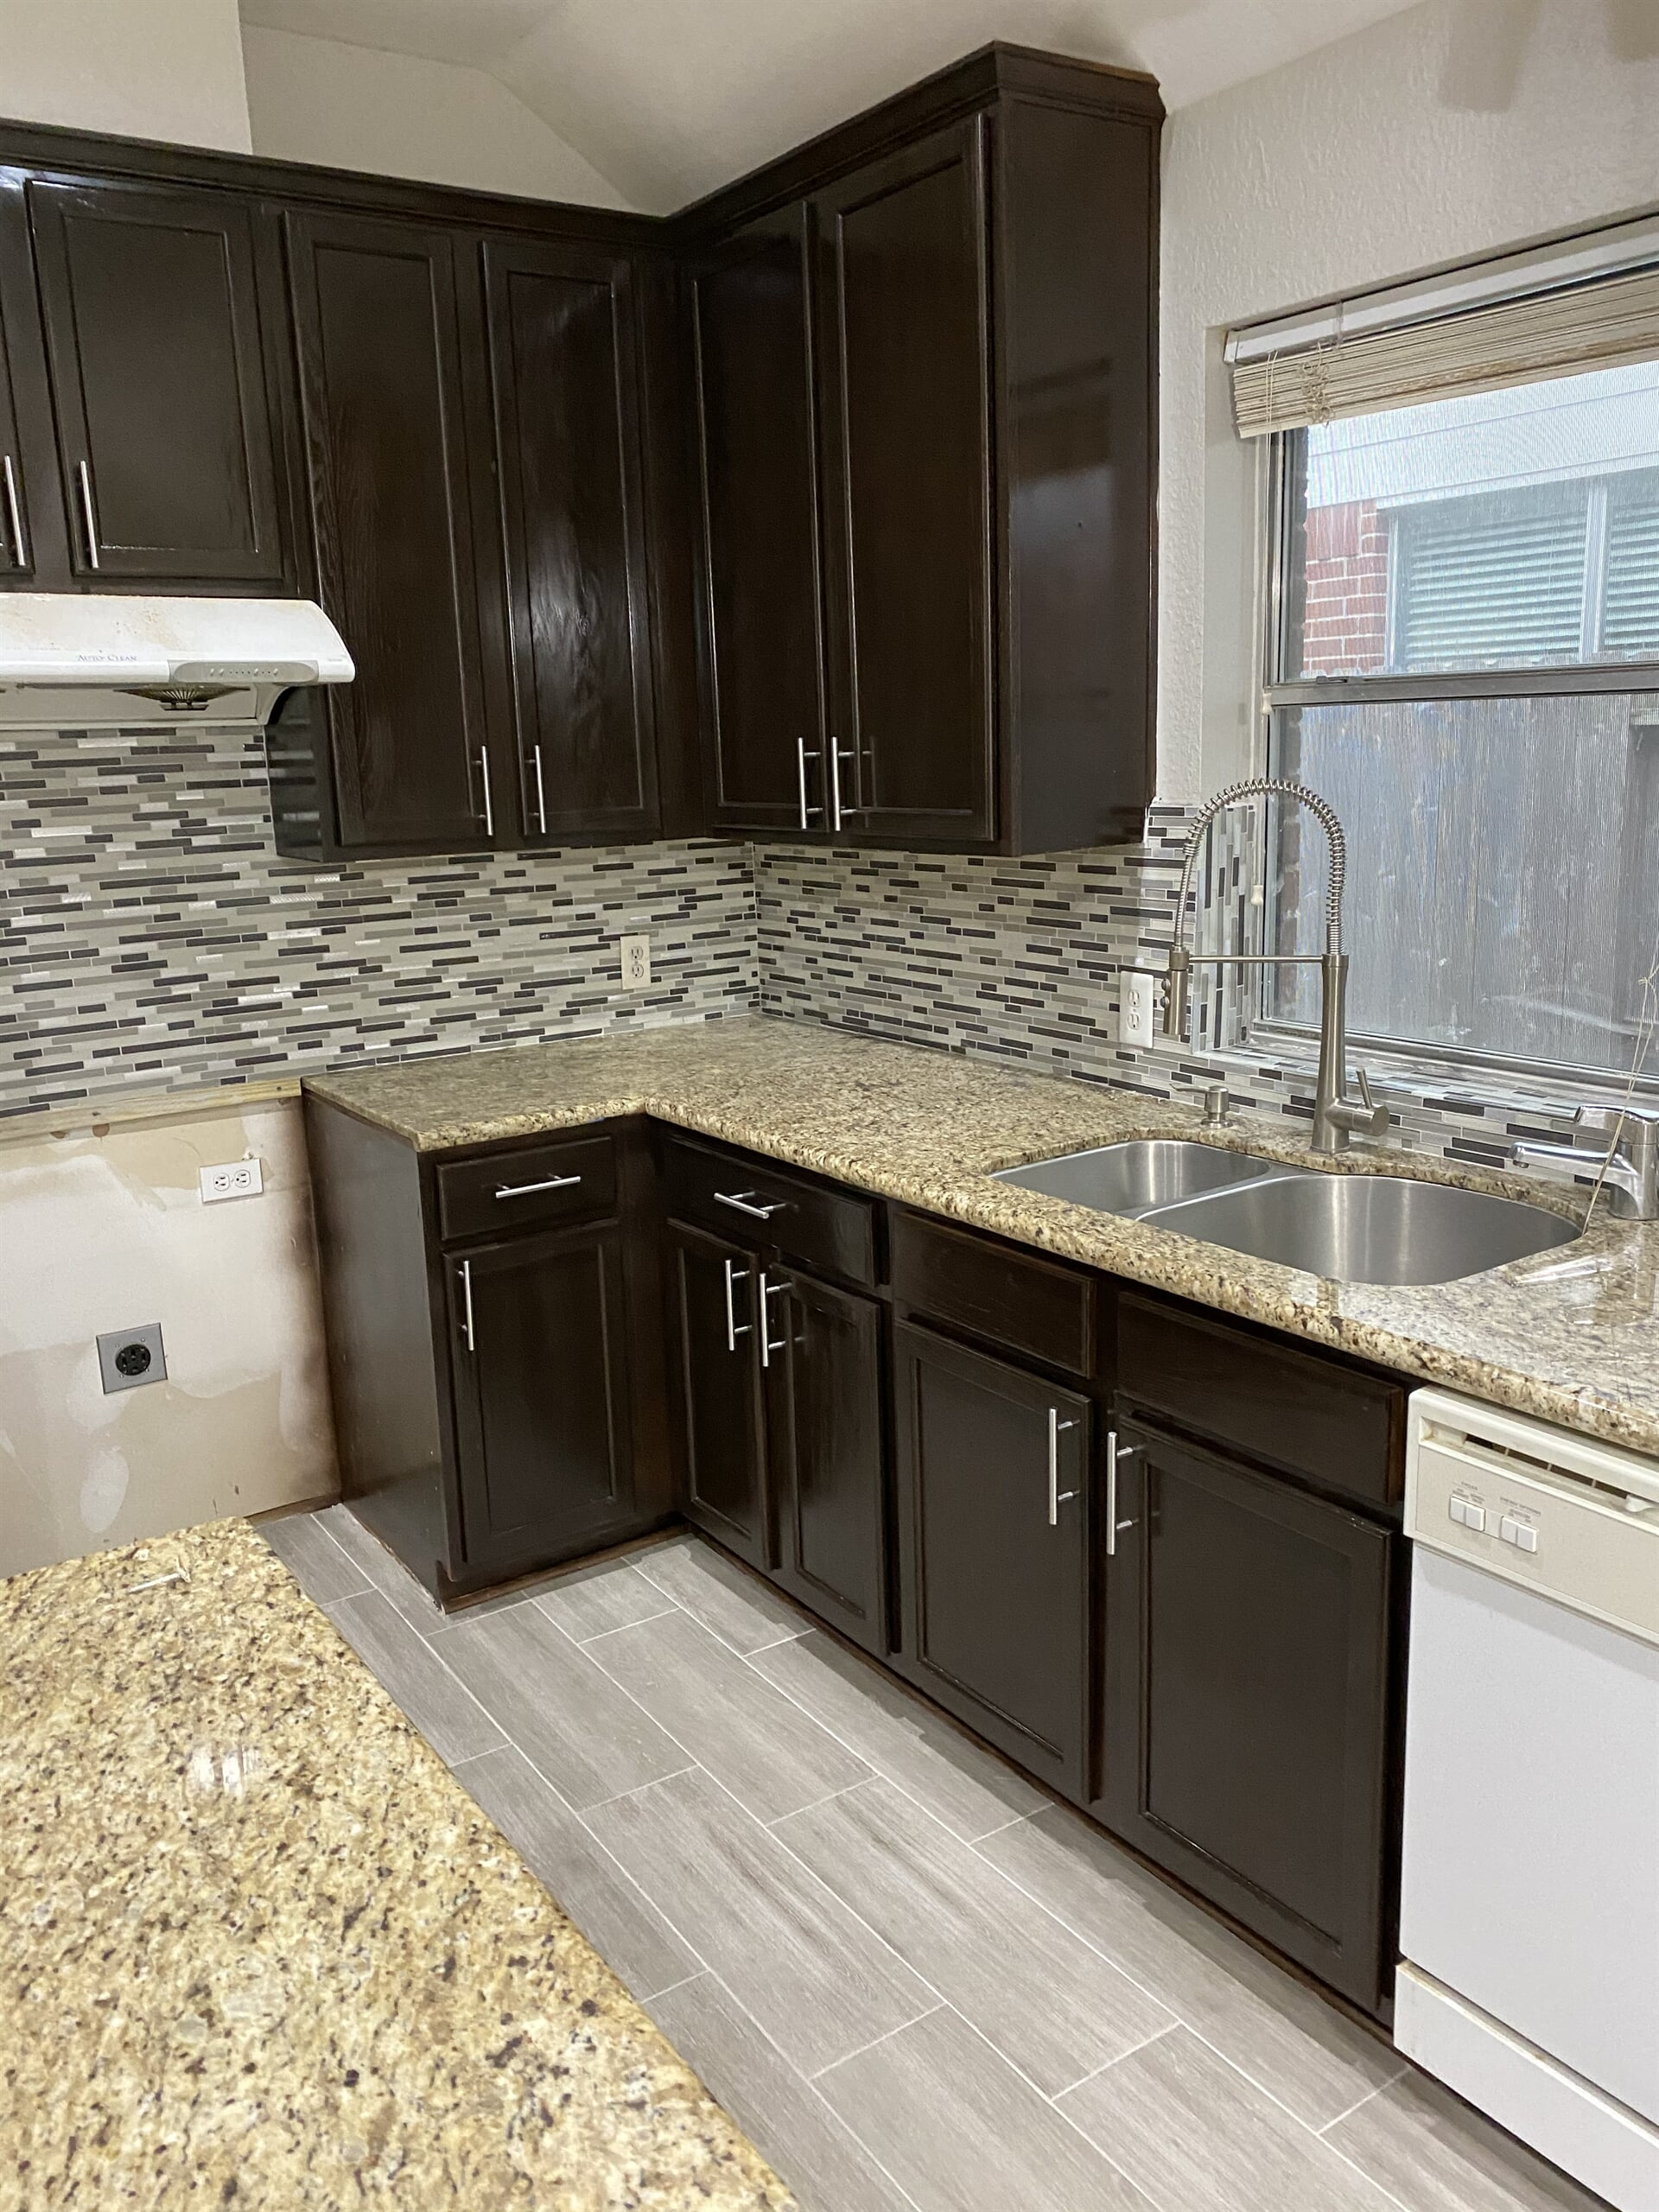 Kitchen cabinets from Houston Floor Installation Services in Conroe, TX